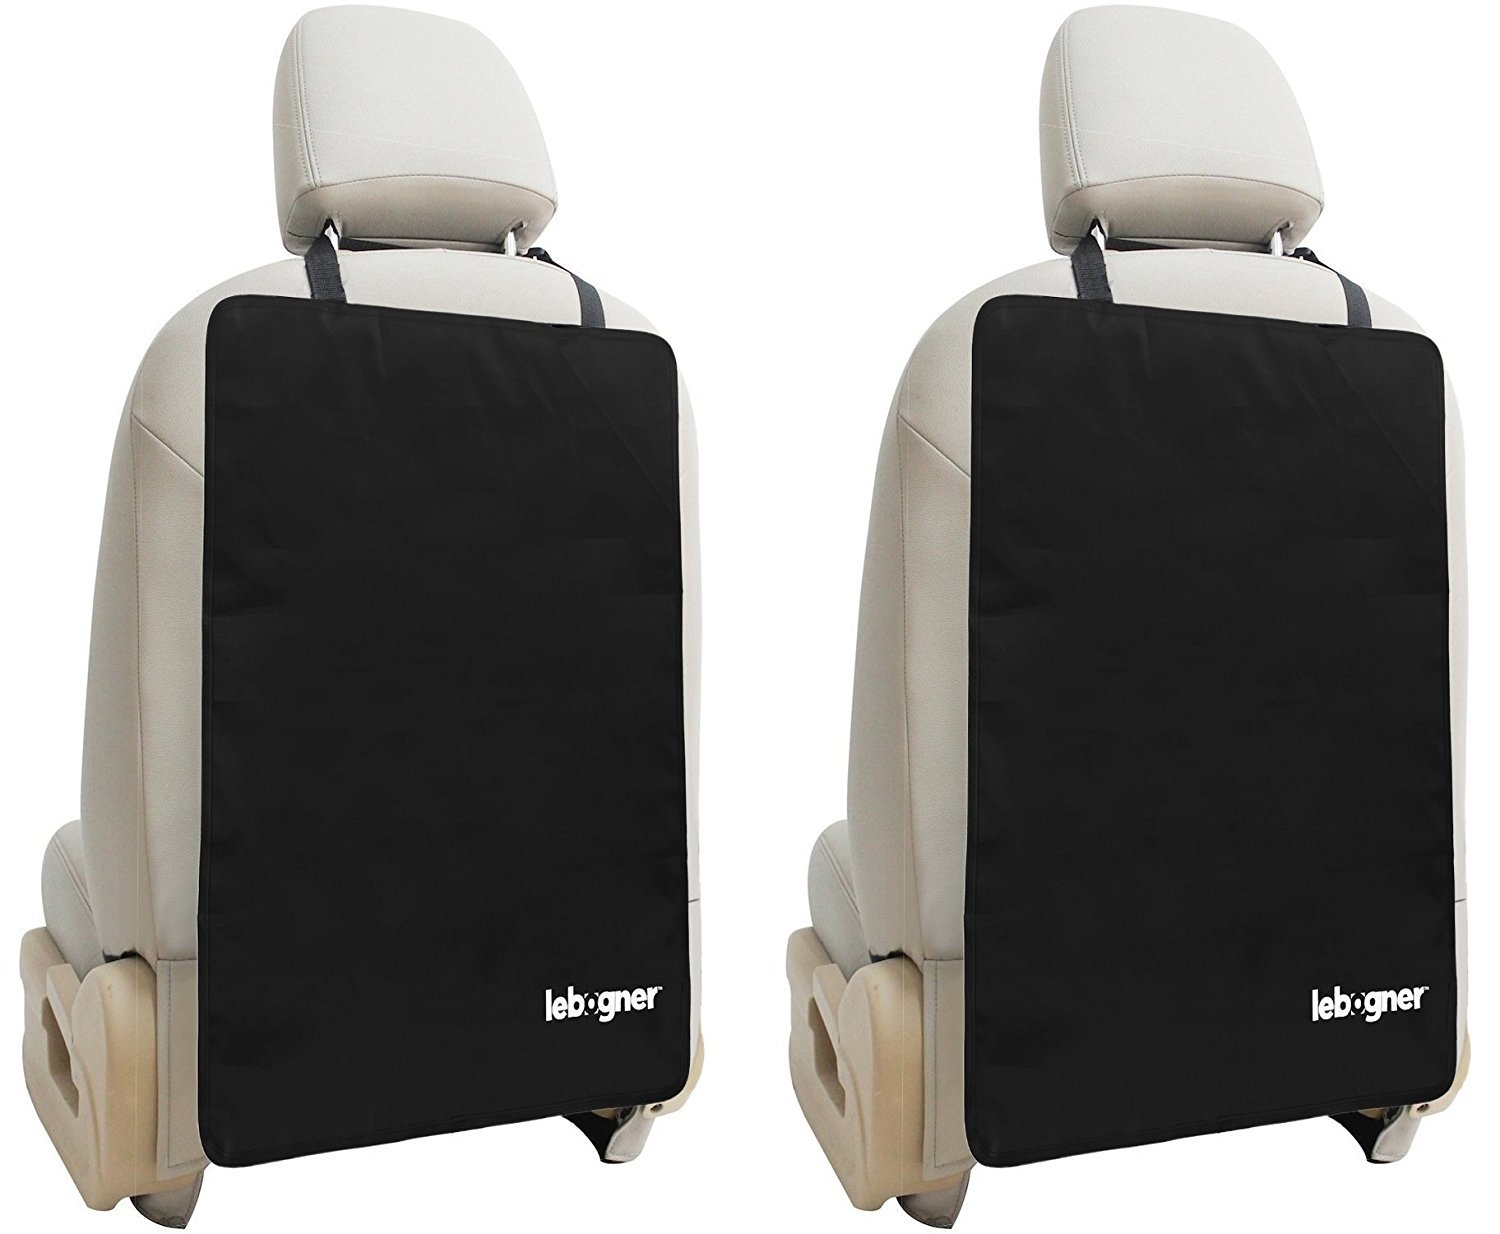 Luxury Car Seat Back Kick Mat Protectors By Lebogner - 2 Pack Large Auto Kick Mats Seat Cover For The Back Of Your Front Seats, Backseat Protectors, Car Seat Protector, Black - Satisfaction Is 100% Guaranteed Or Your Money Back. LOR-A-1002